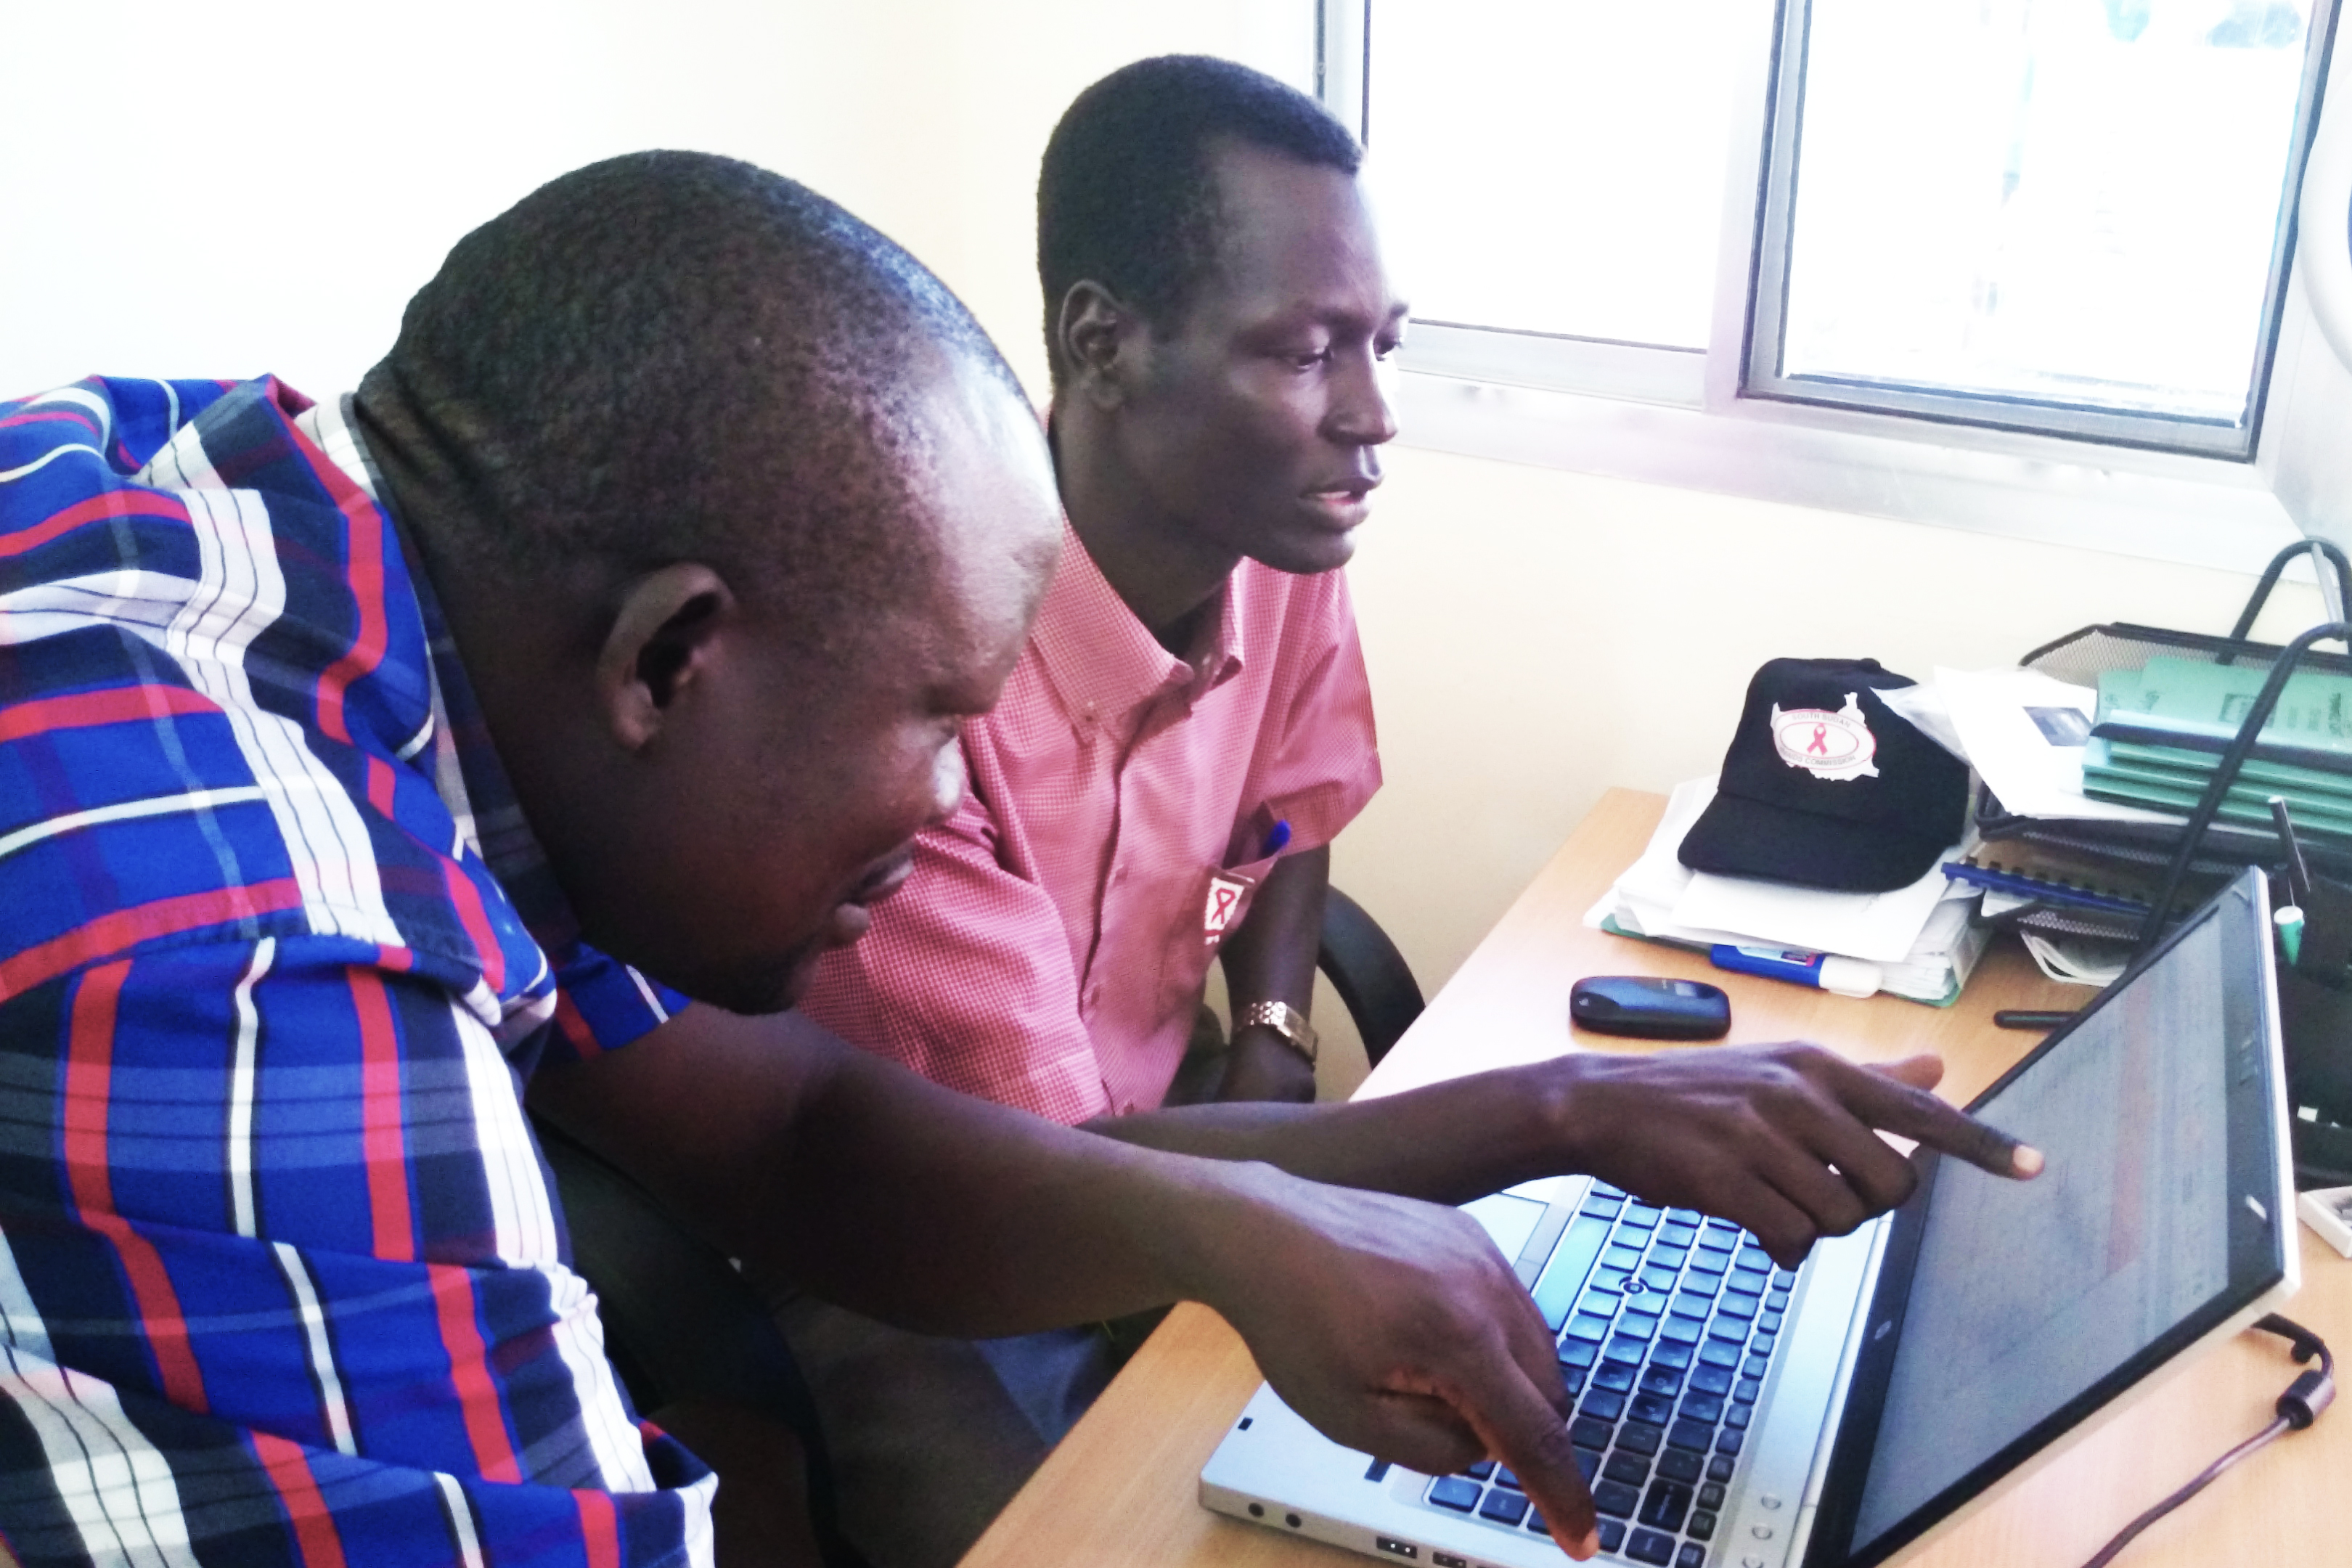 Acaga mentors and coaches Ajak and gives him hands-on training on the key aspects of data collection, analysis, dissemination, storage, and coordination among partners.